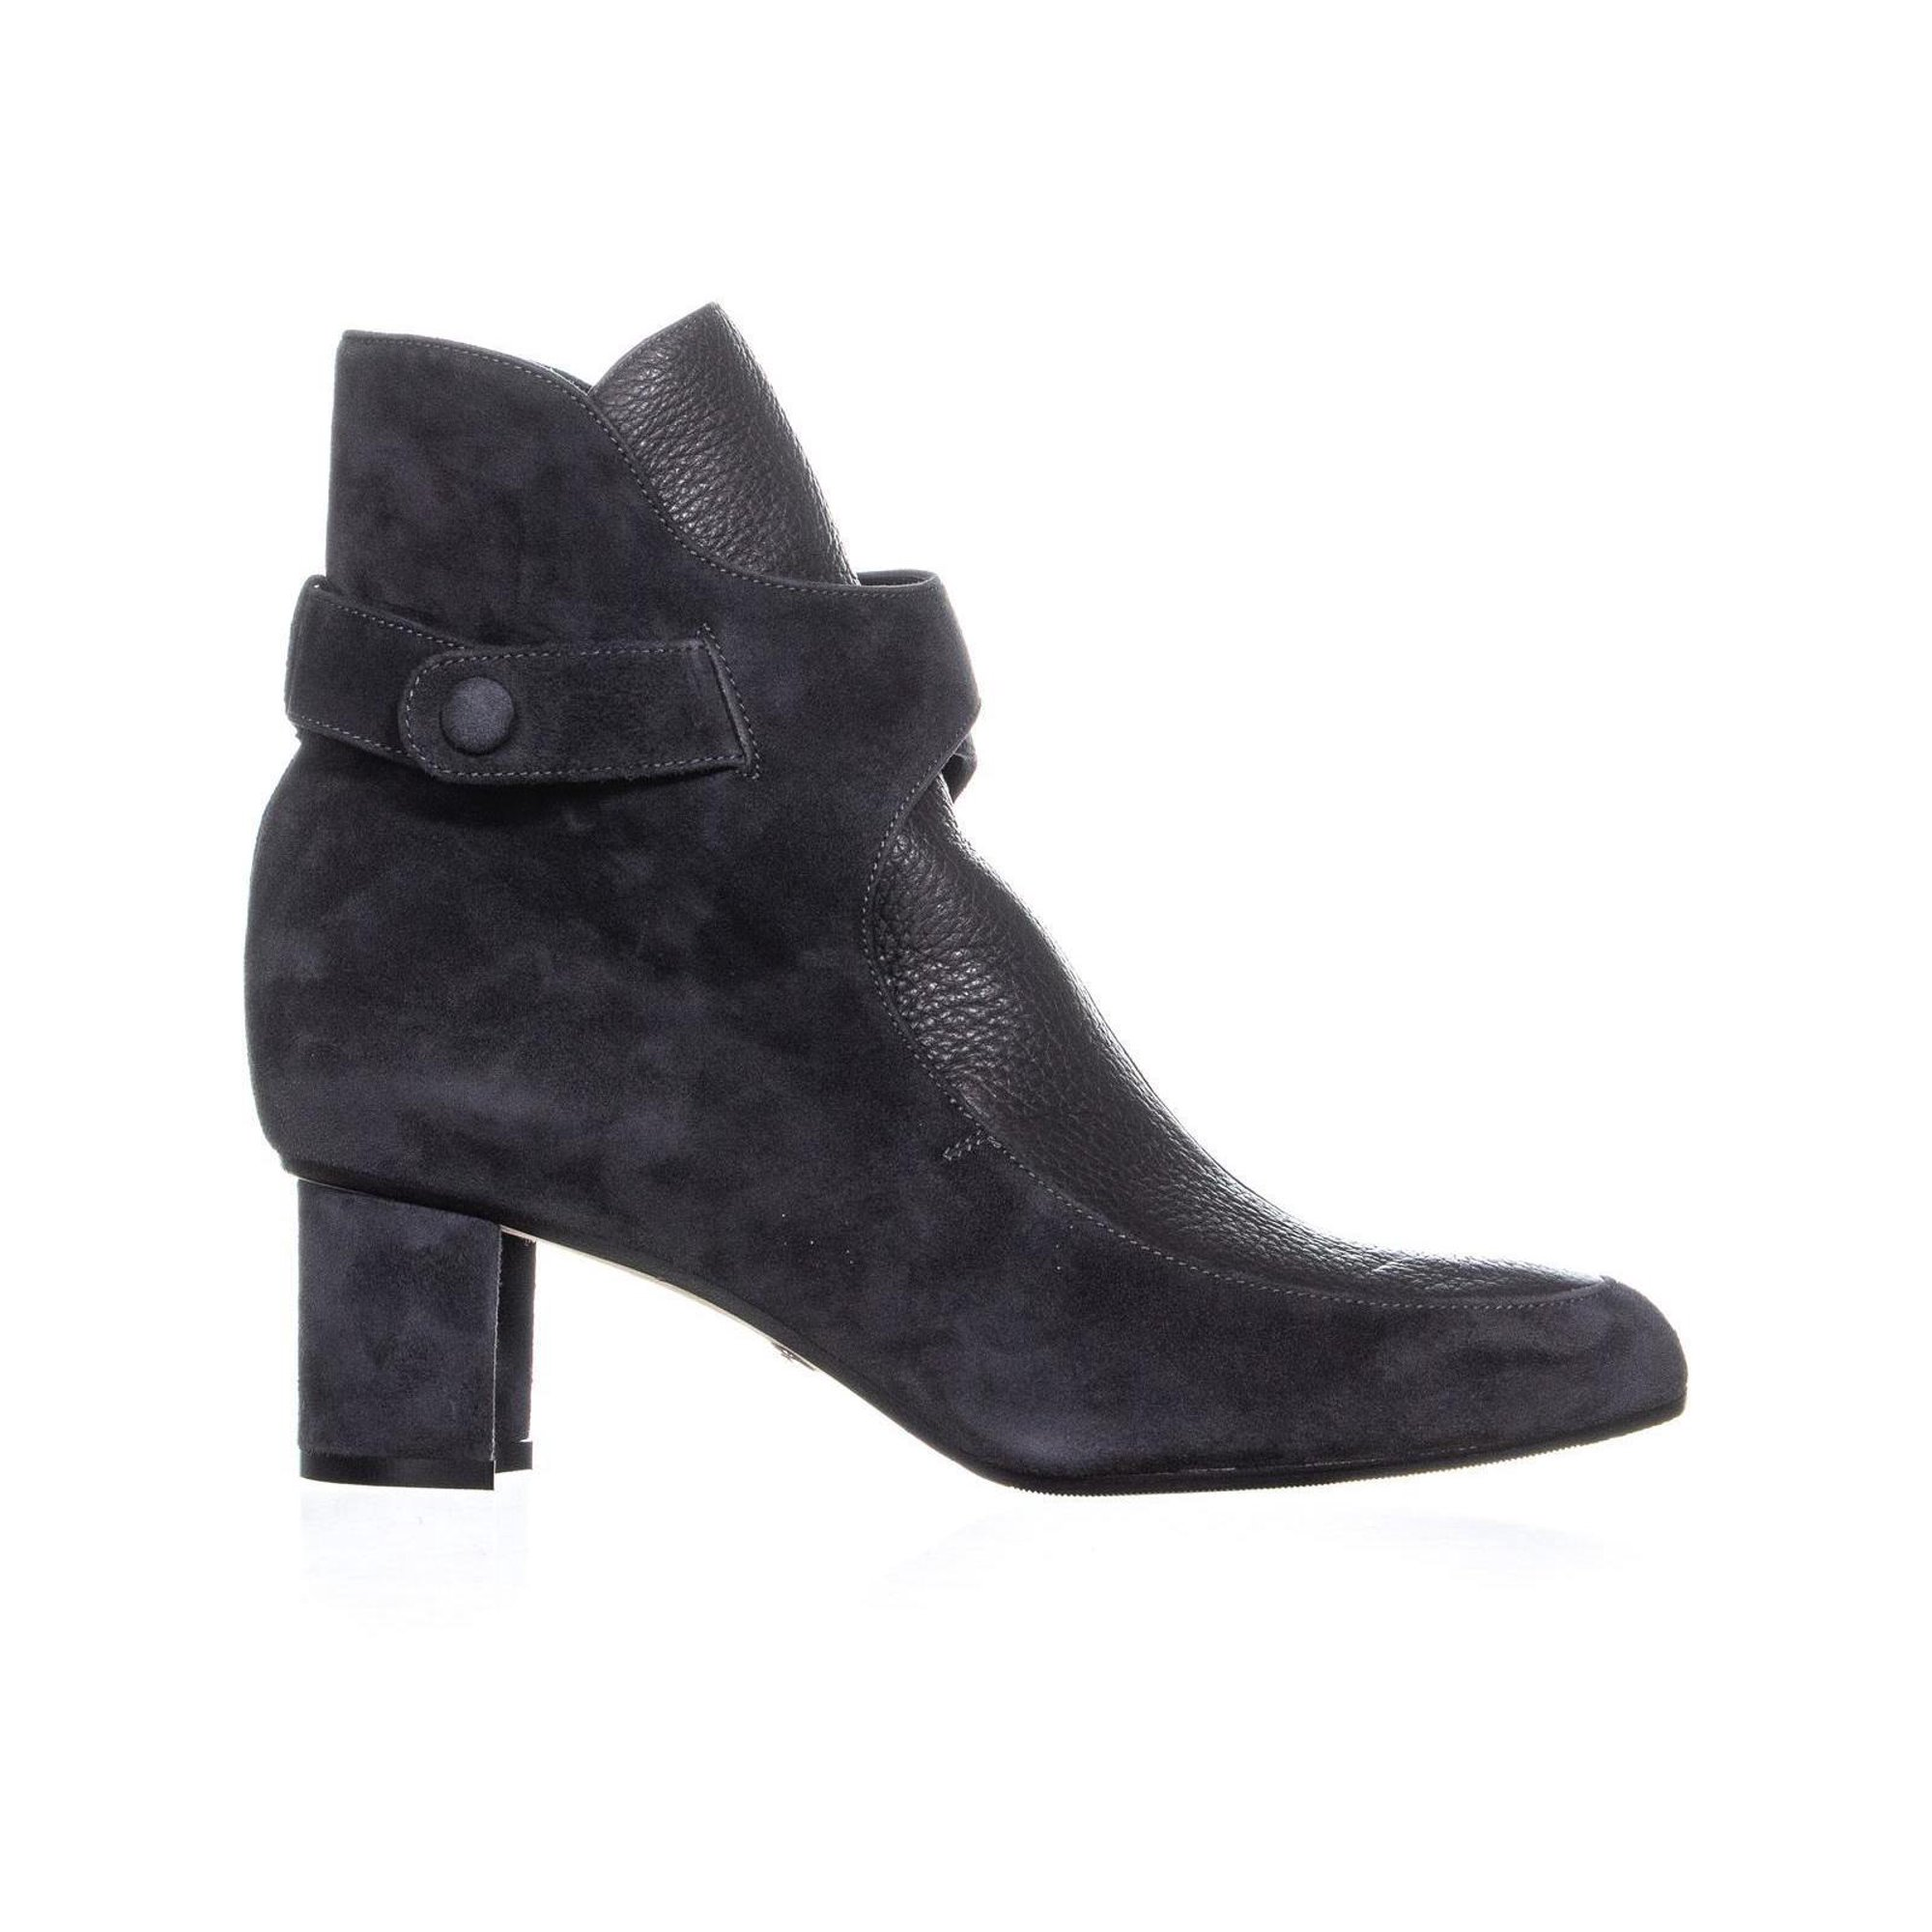 b50566d6916 Sarah Flint Maria Front Flap High Ankle Boots, Slate Suede | Walmart ...